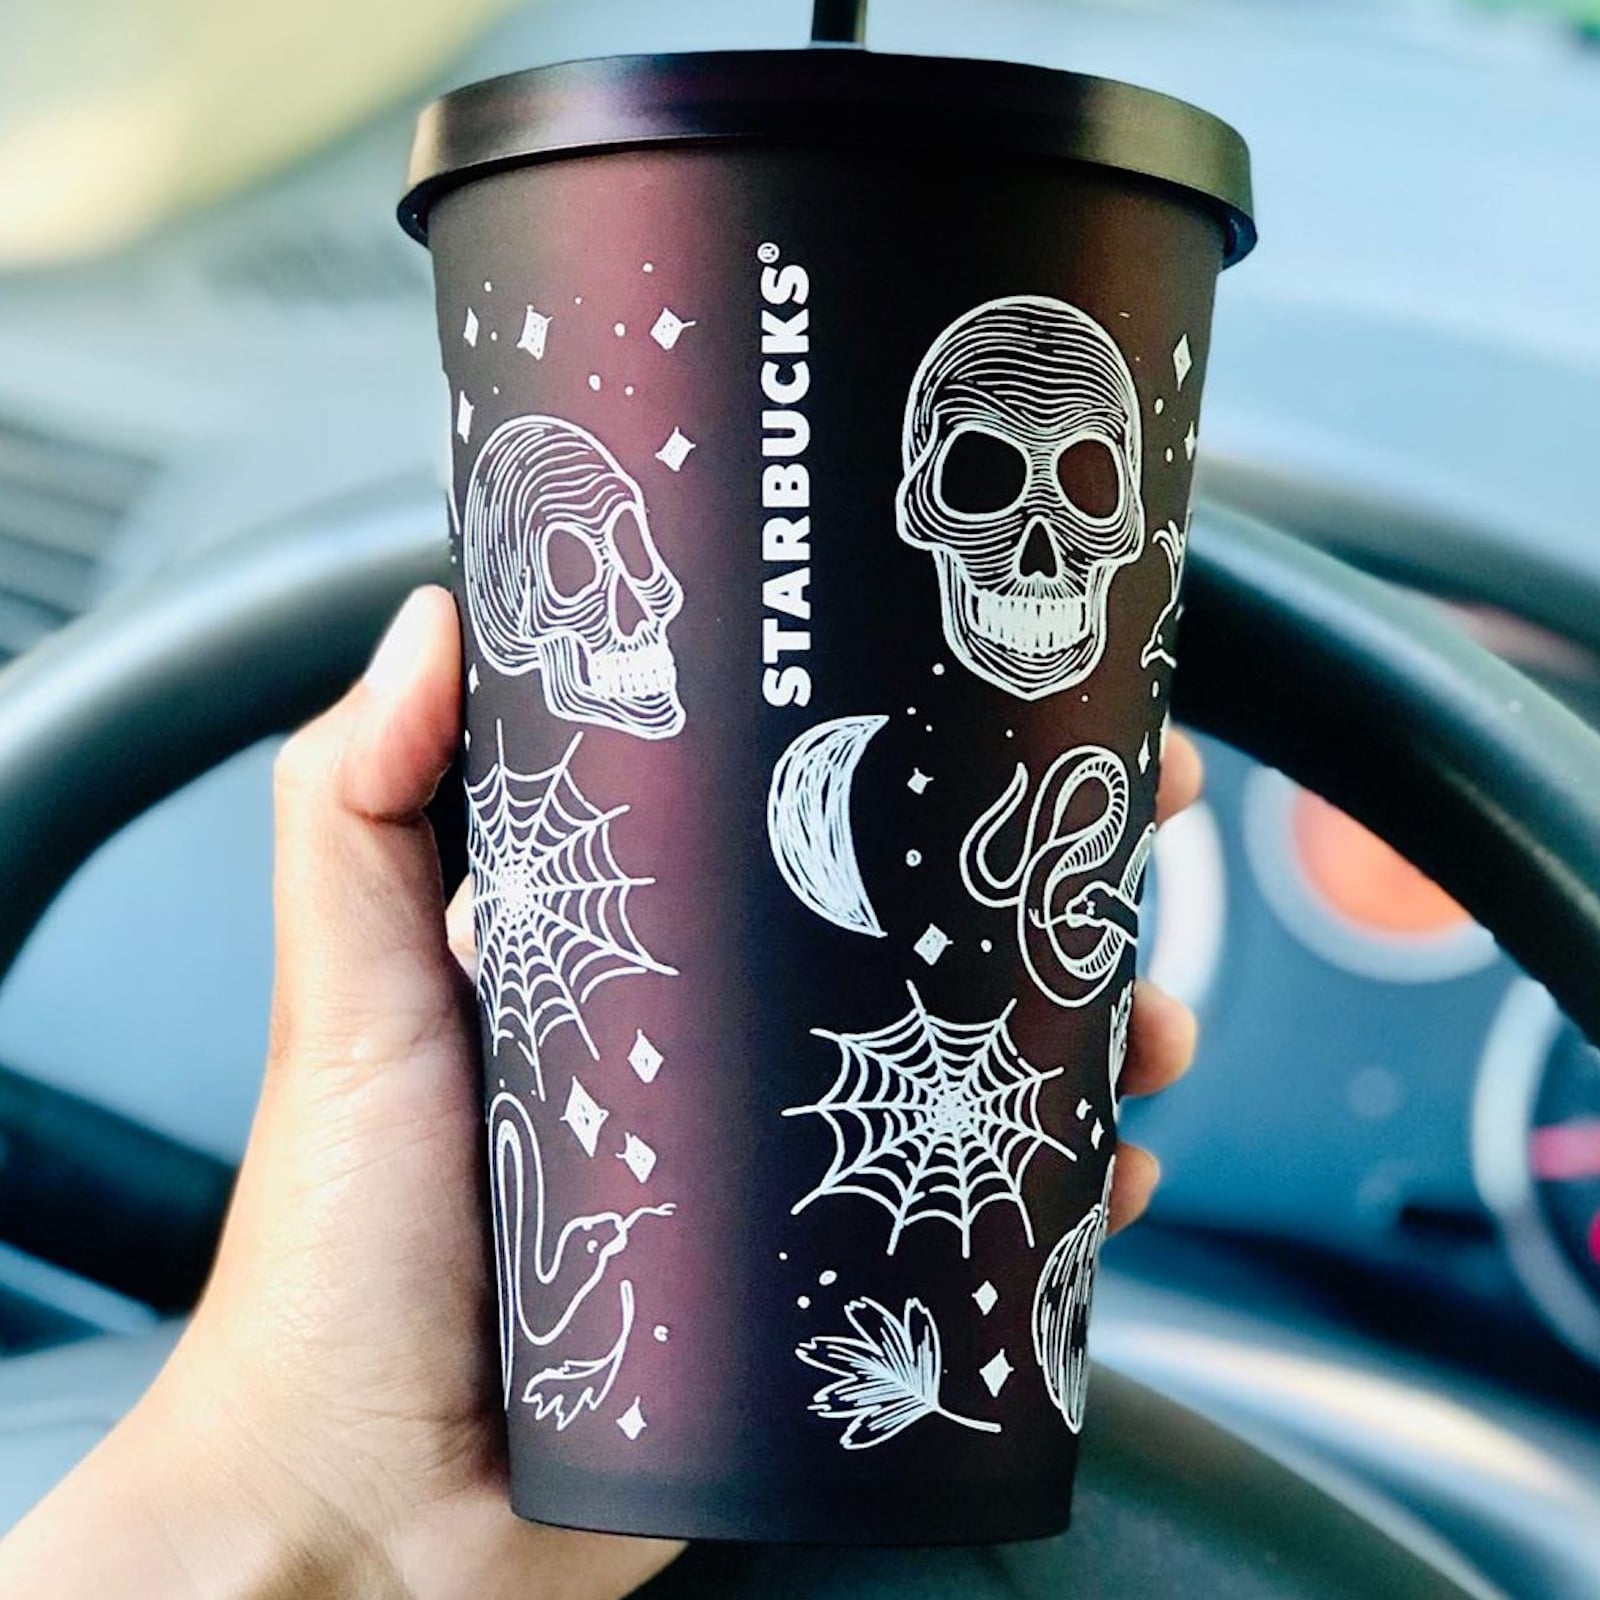 Starbucks Christmas Cups 2019.Starbucks Is Releasing Tons Of Spooky Halloween Tumblers